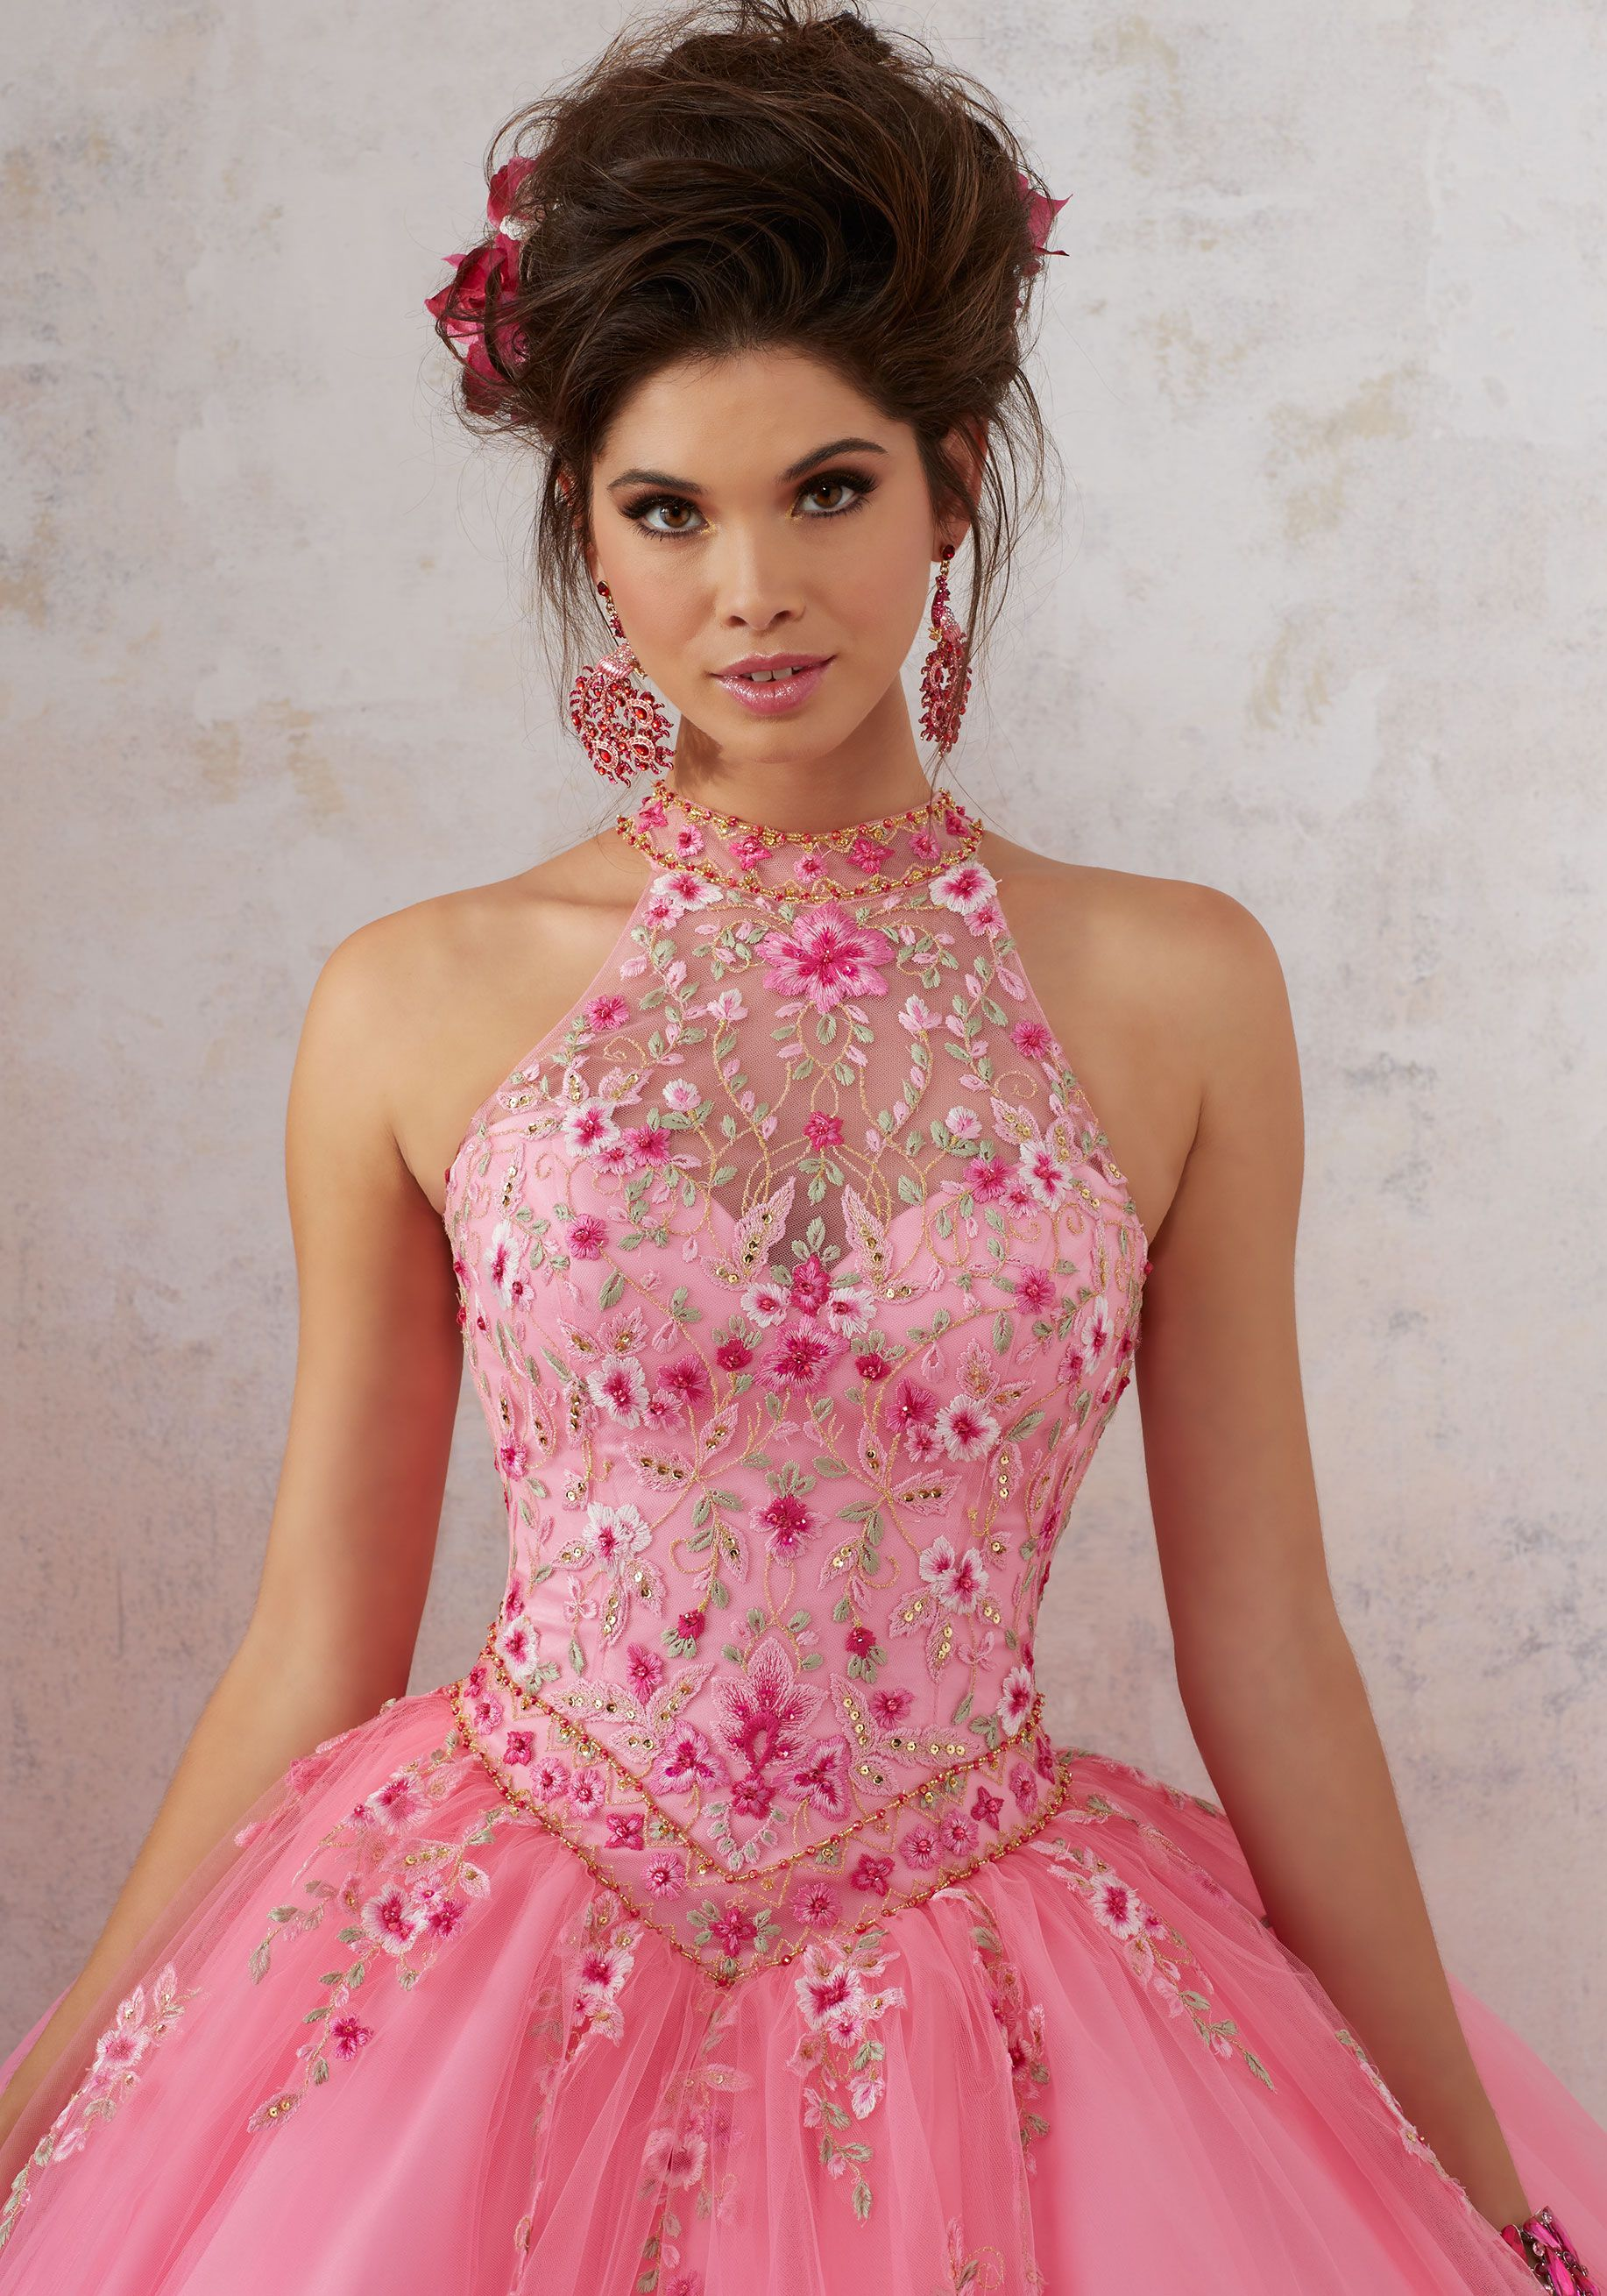 Embroidery and Beading on a Tulle Ballgown | Vizcaya Style 89134 ...